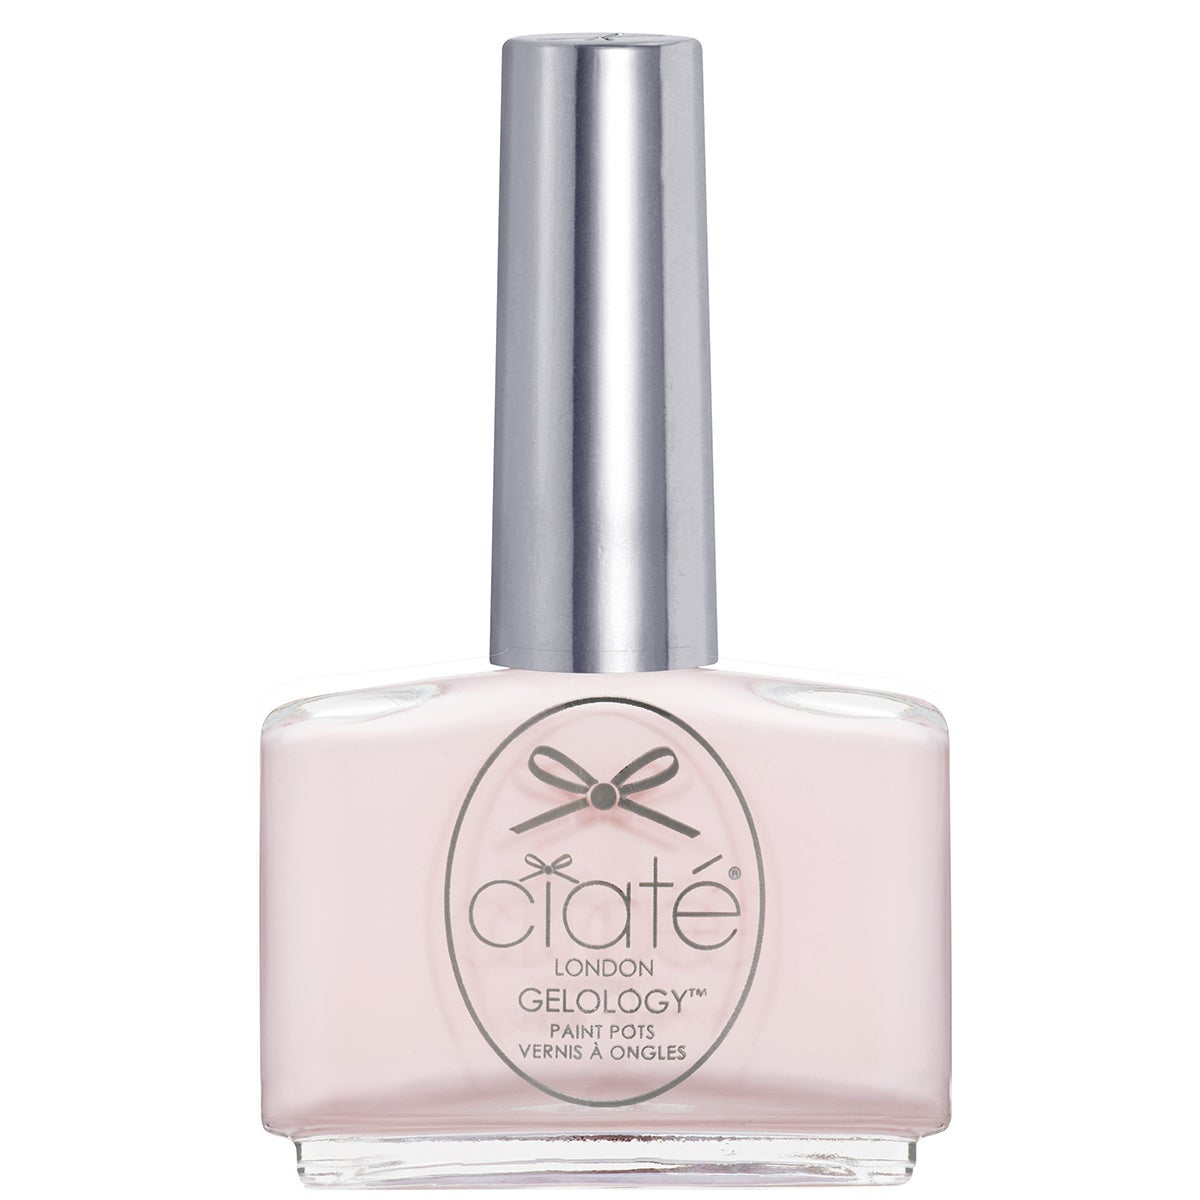 Ciaté Gelology Paint Pots Nail Polish